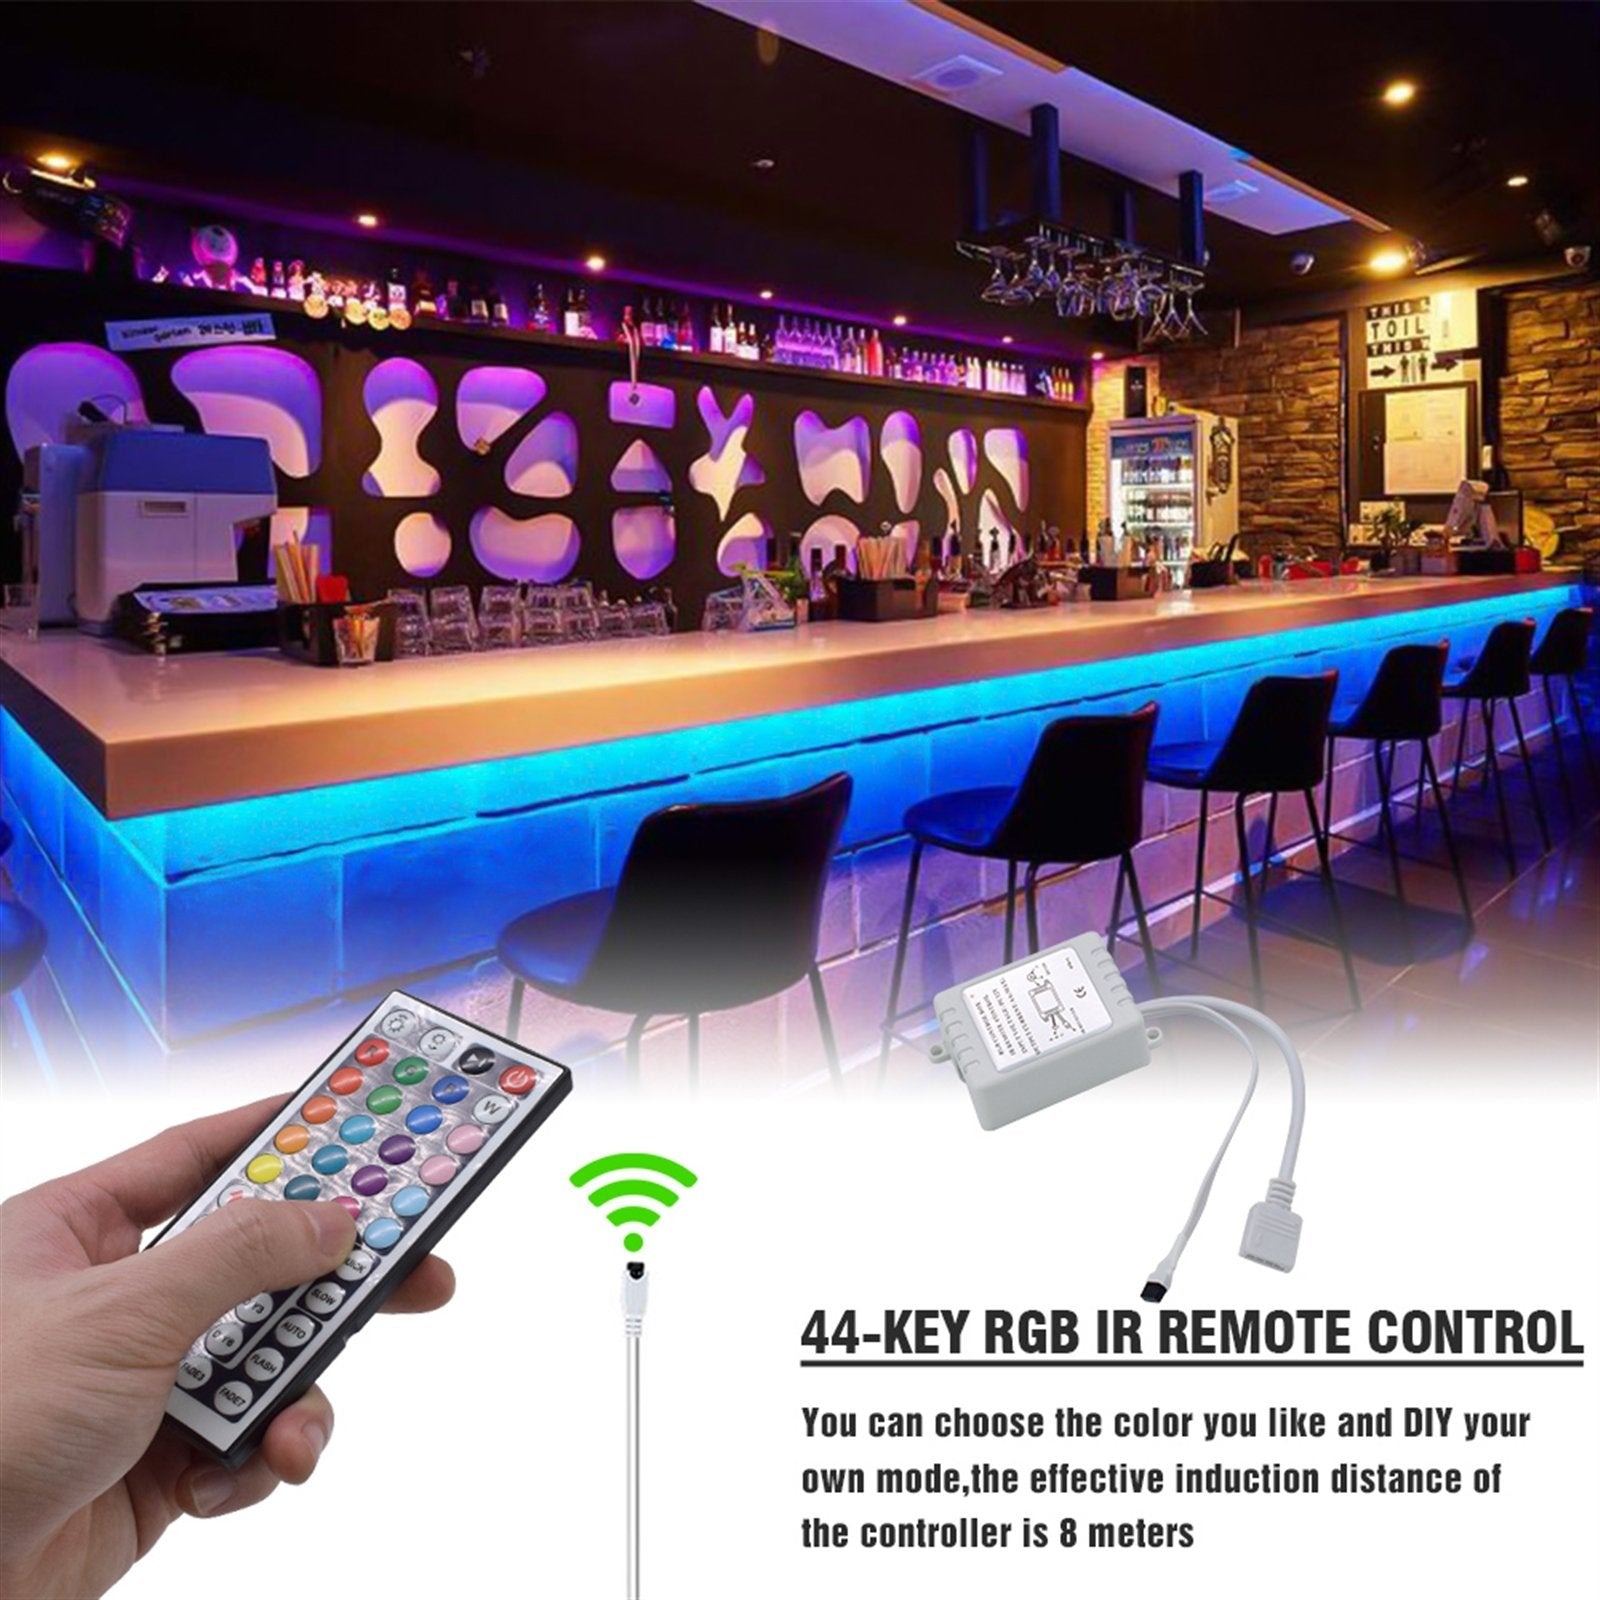 150-LED SMD3528 24W RGB IR44 Light Strip Set with IR Remote Controller (White Lamp Plate)